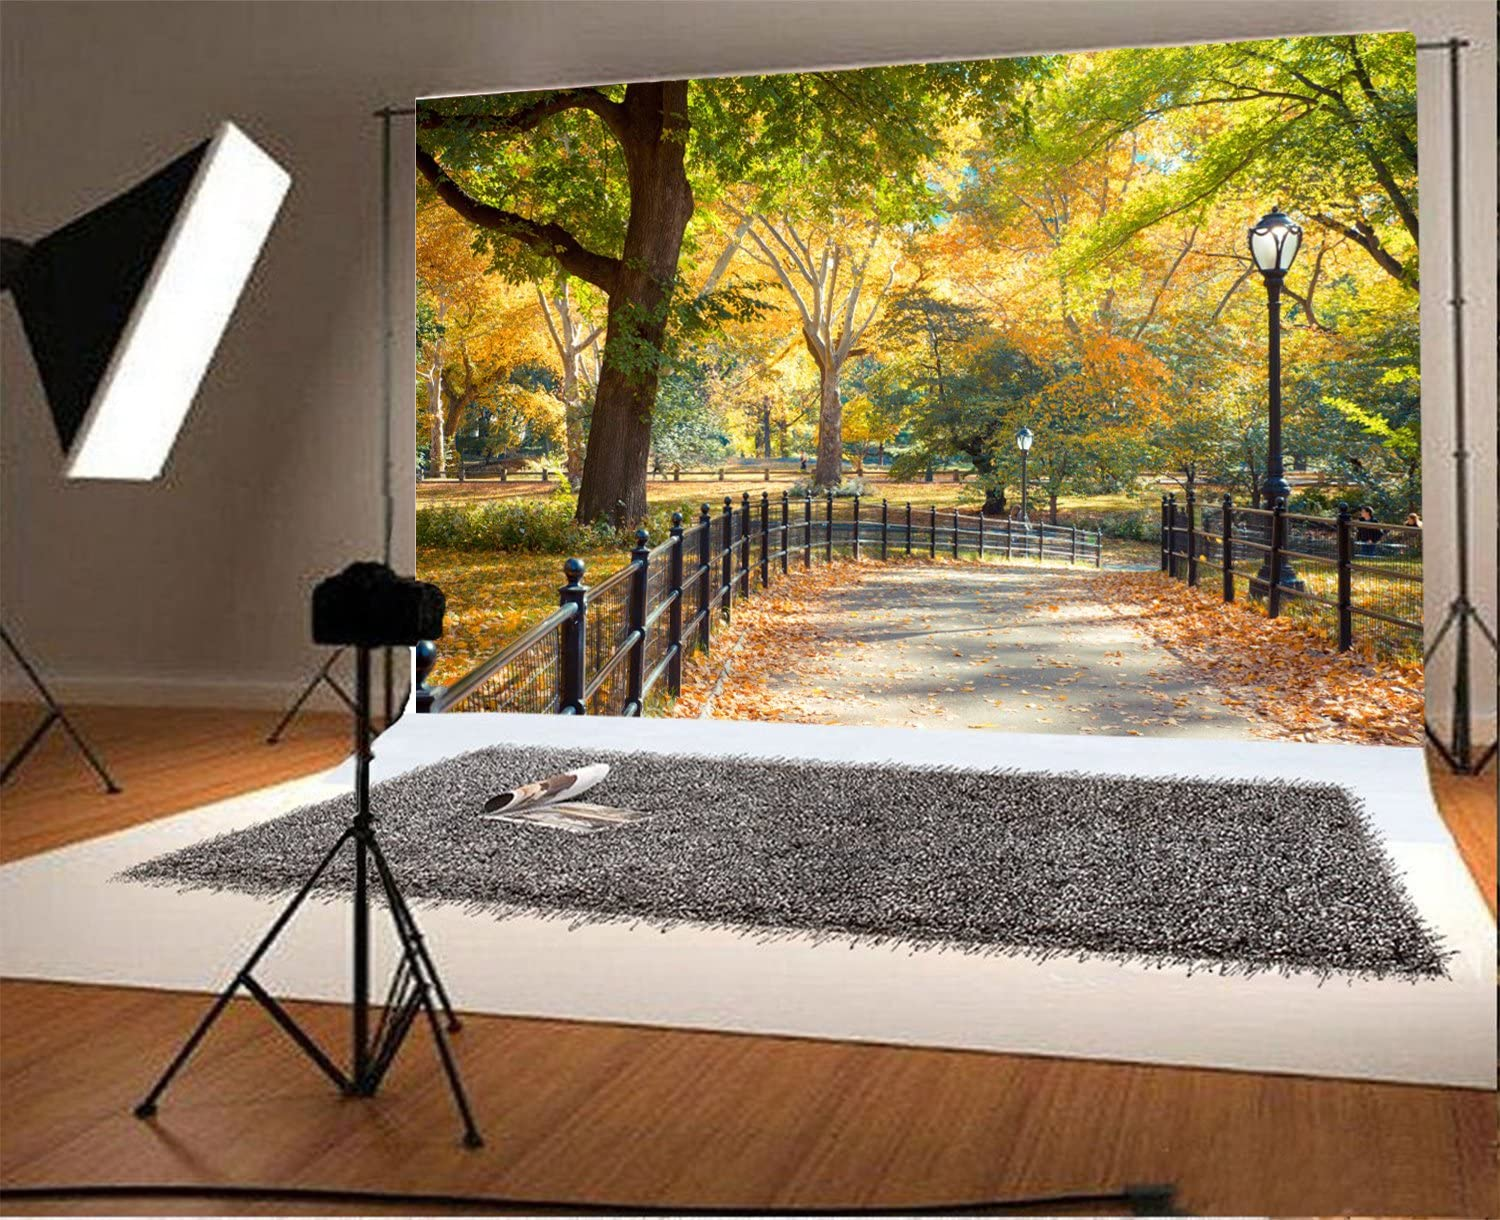 10x15 FT Photography Backdrop Central Park in Autumn with Lake Trees and Manhattan USA American Nature Image Background for Baby Shower Birthday Wedding Bridal Shower Party Decoration Photo Studio